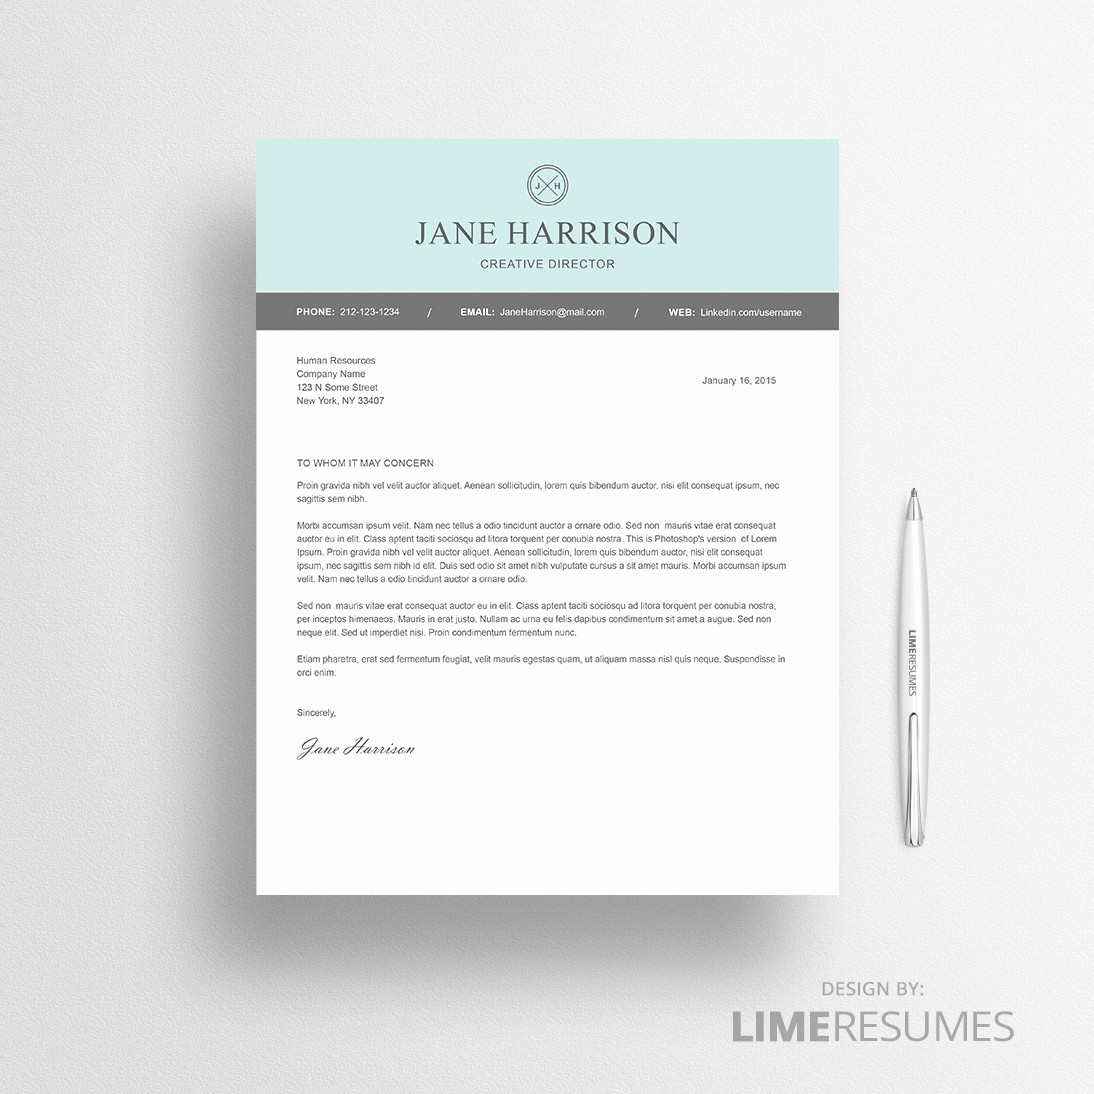 Template Of A Cover Letter Lovely Modern Resume Template for Microsoft Word Limeresumes